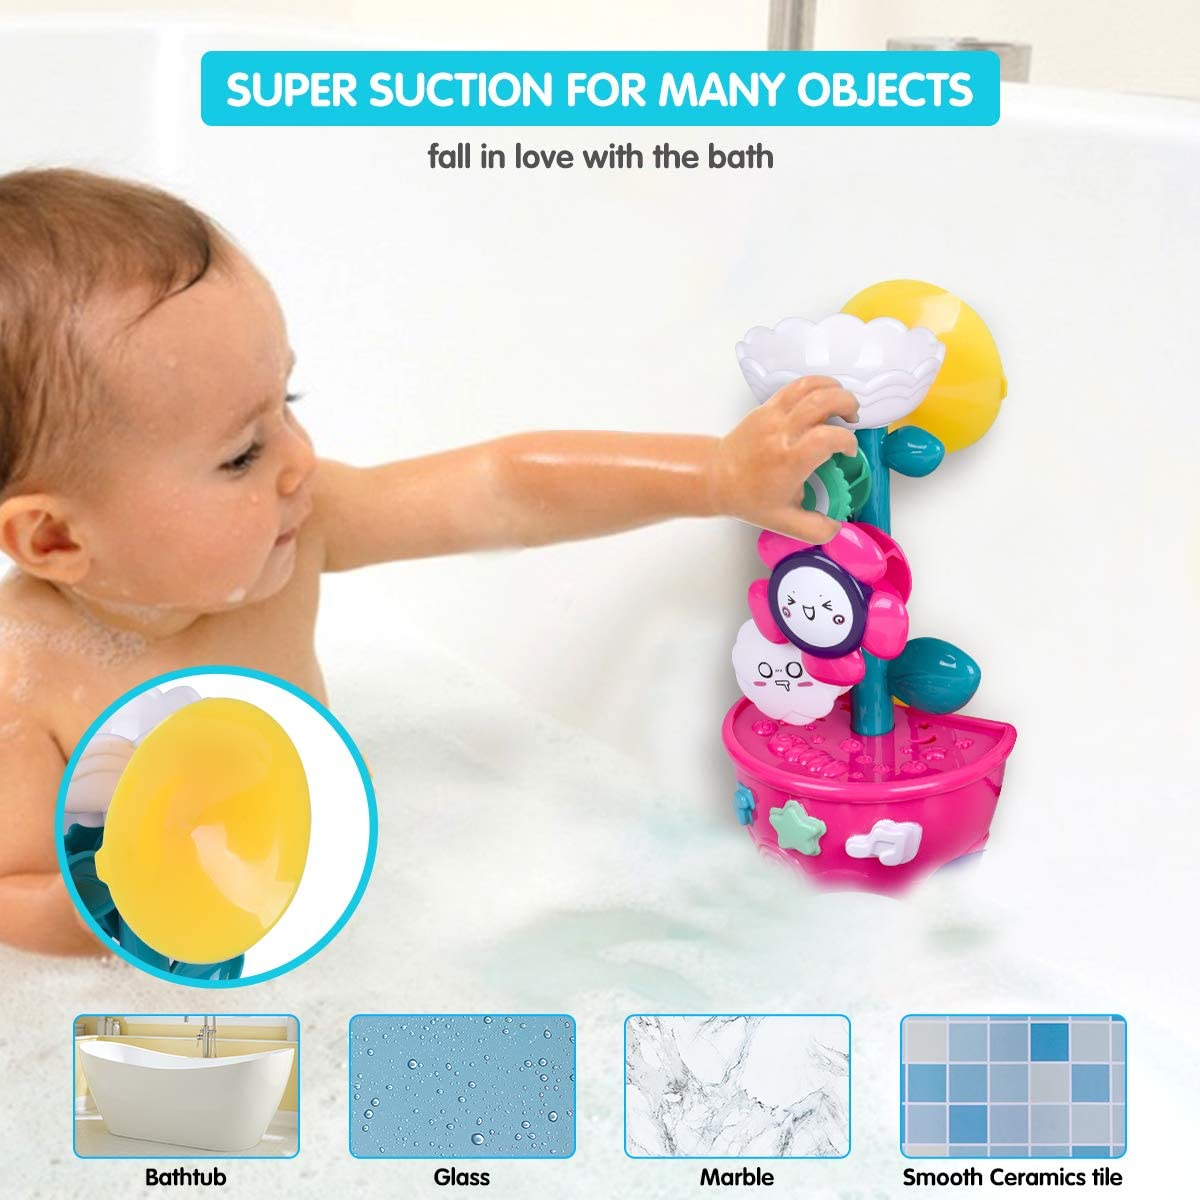 Kids 2-6 Years Bath Time Toys with 2 Suction Cups// 1 Watering Can// 4 Leaky Cups Girls Boys Ideal Gift Agomttv Bath Toys Bathtub Toys with Rotating Waterfall Flower Bathing Toys for Toddlers Babies